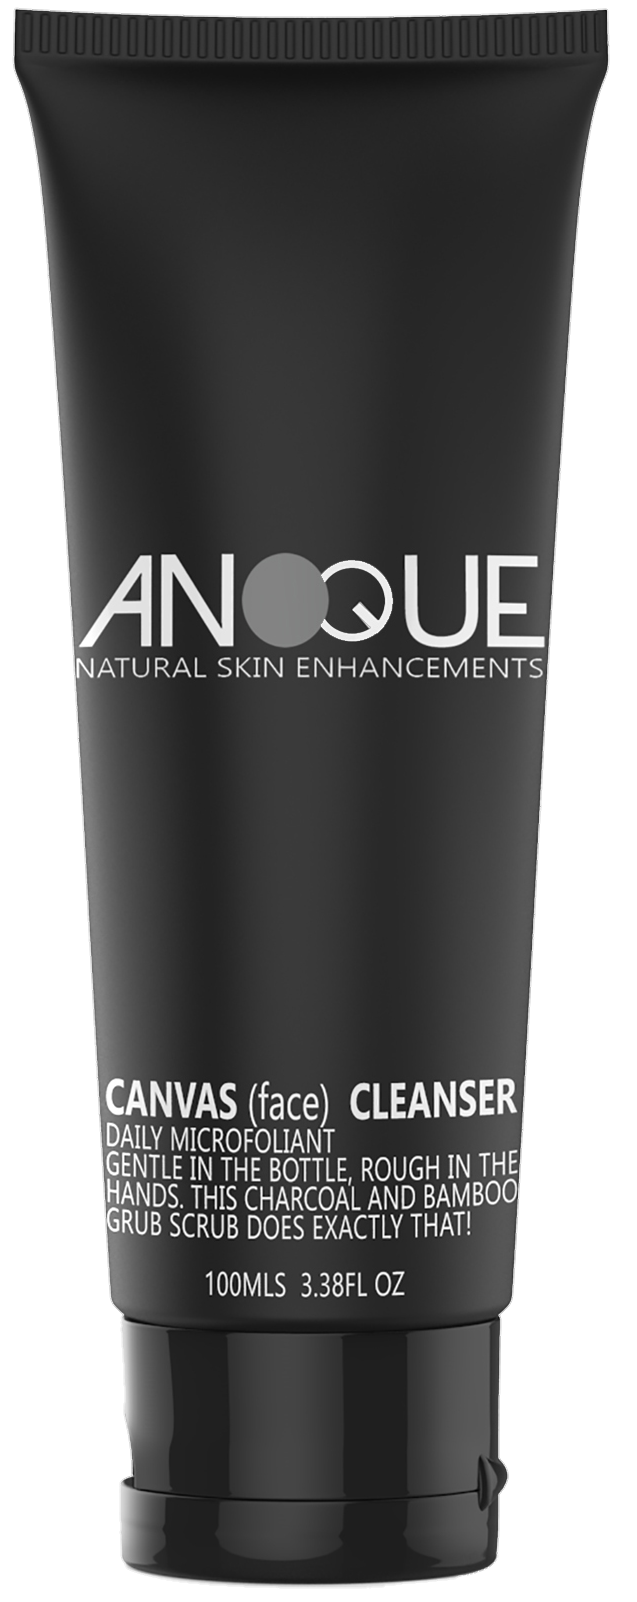 Anoque - Mens Charcoal Face Cleanser & Scrub